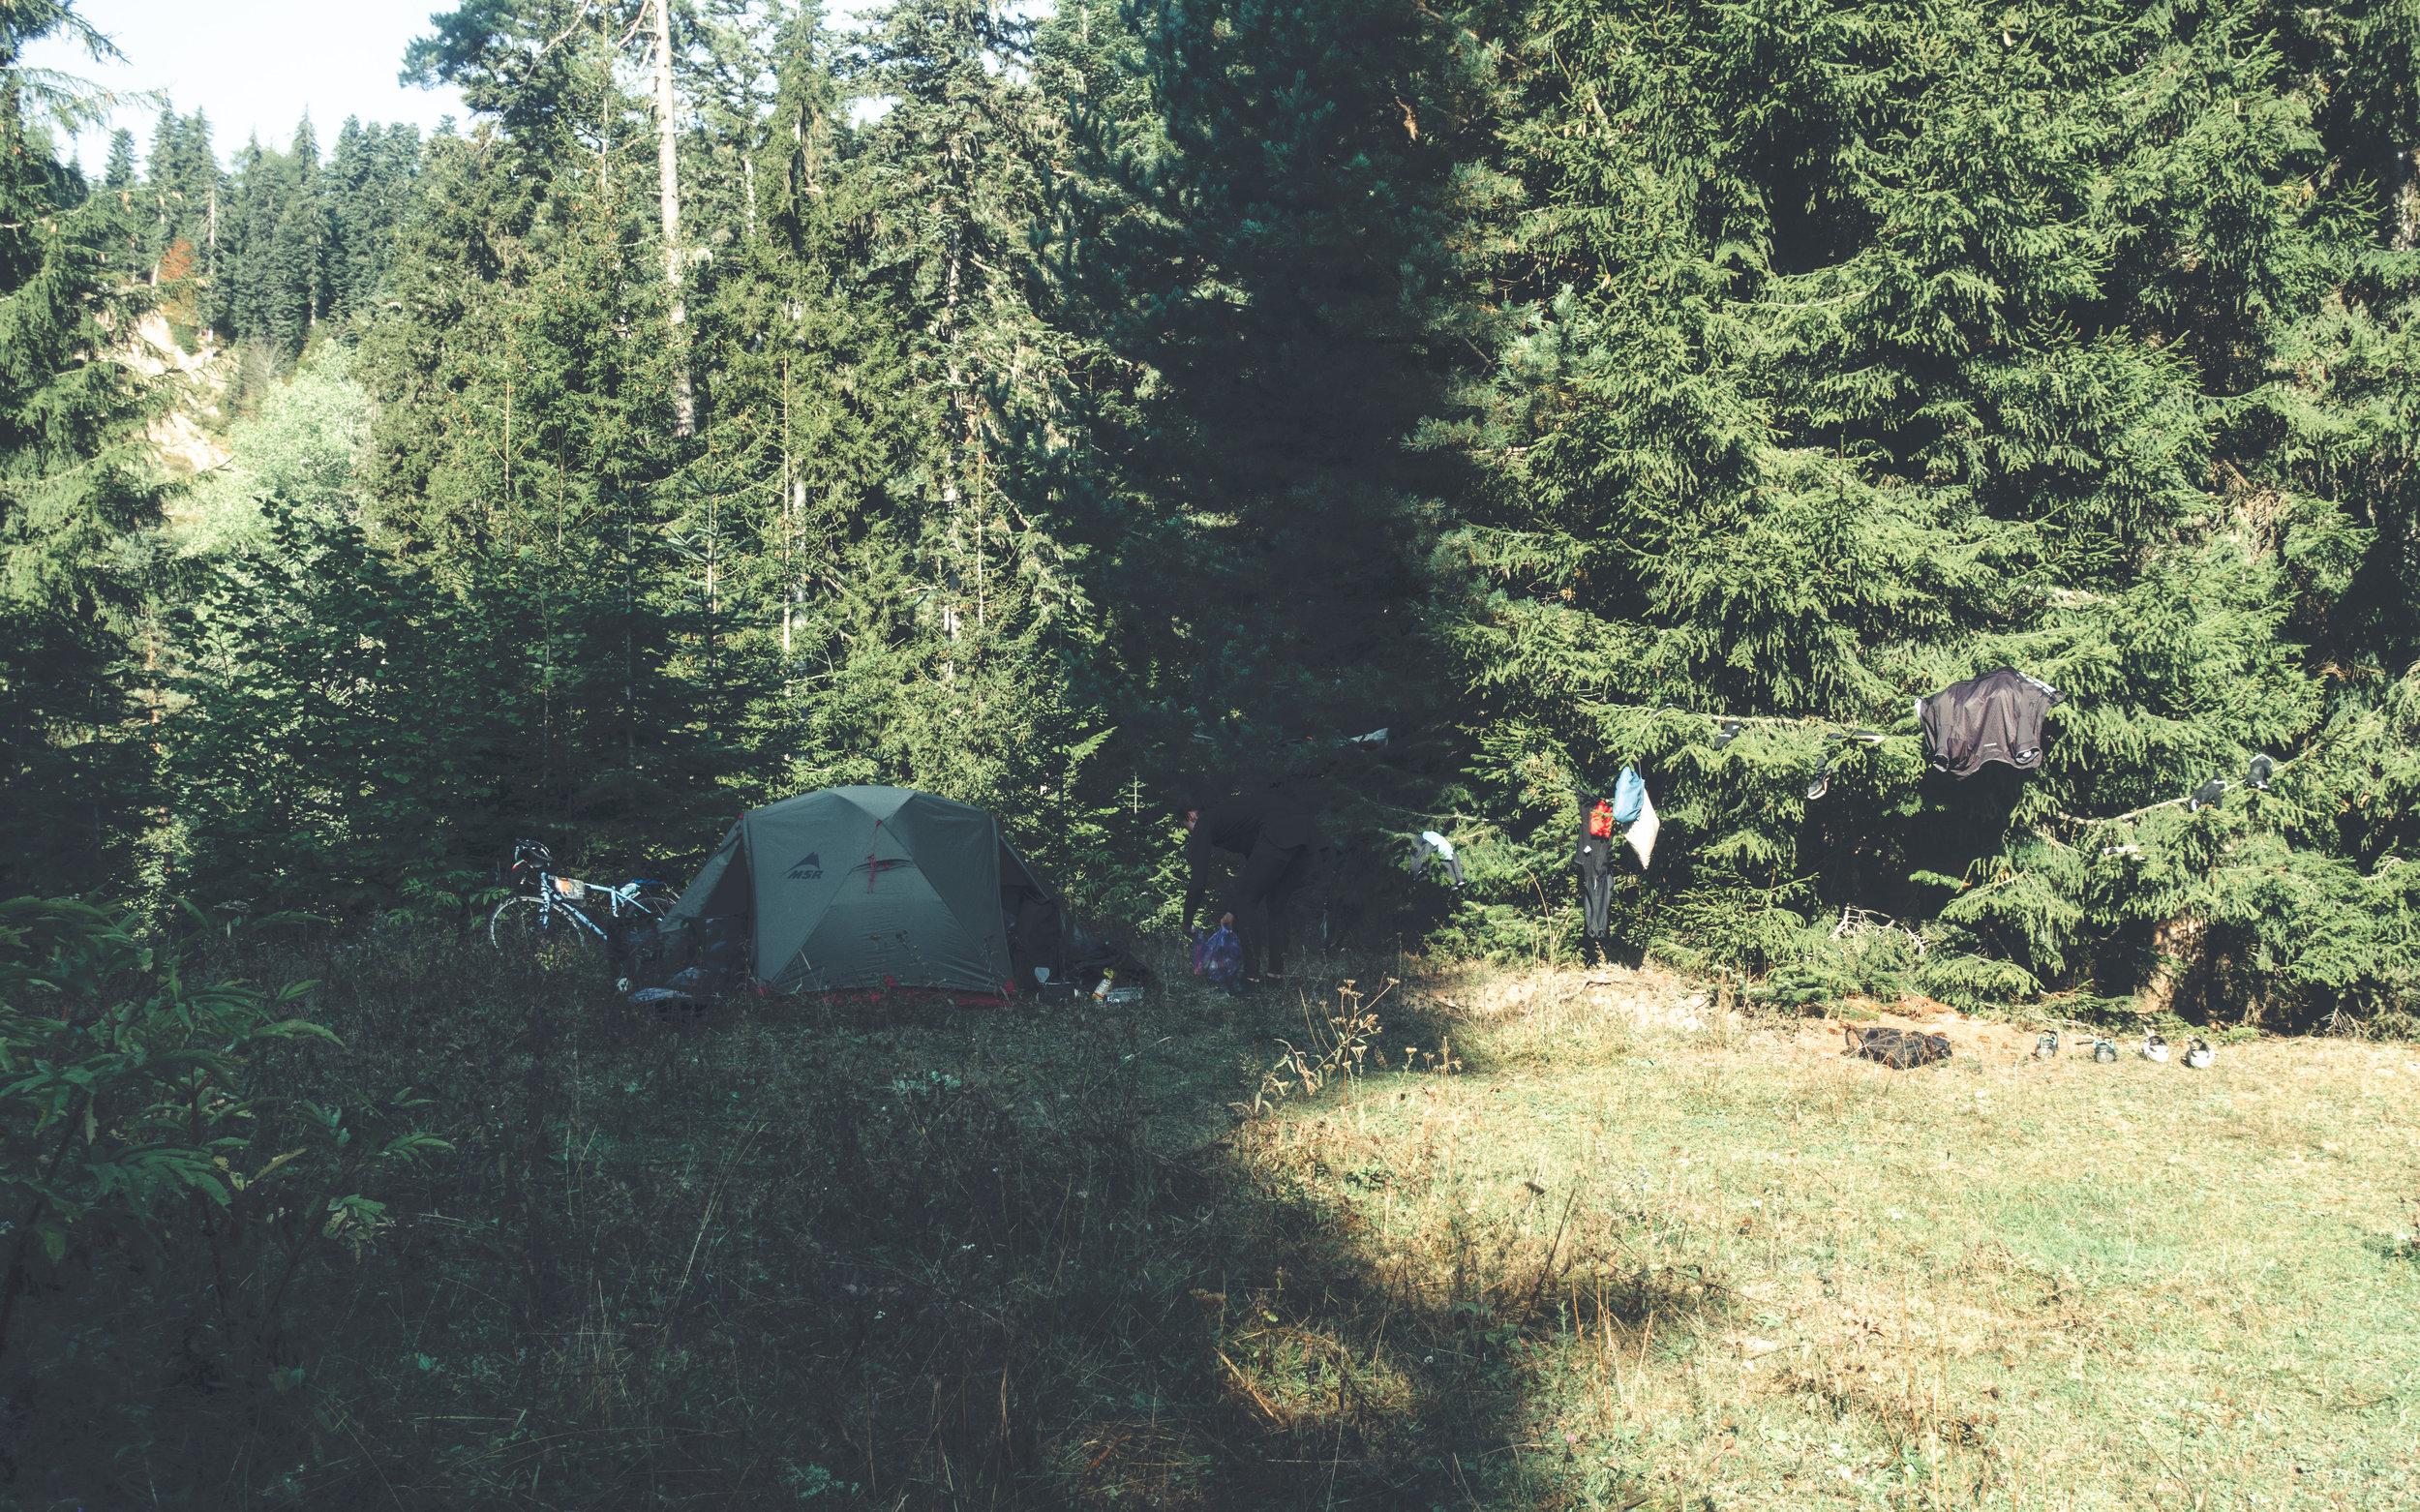 Pine forest camping